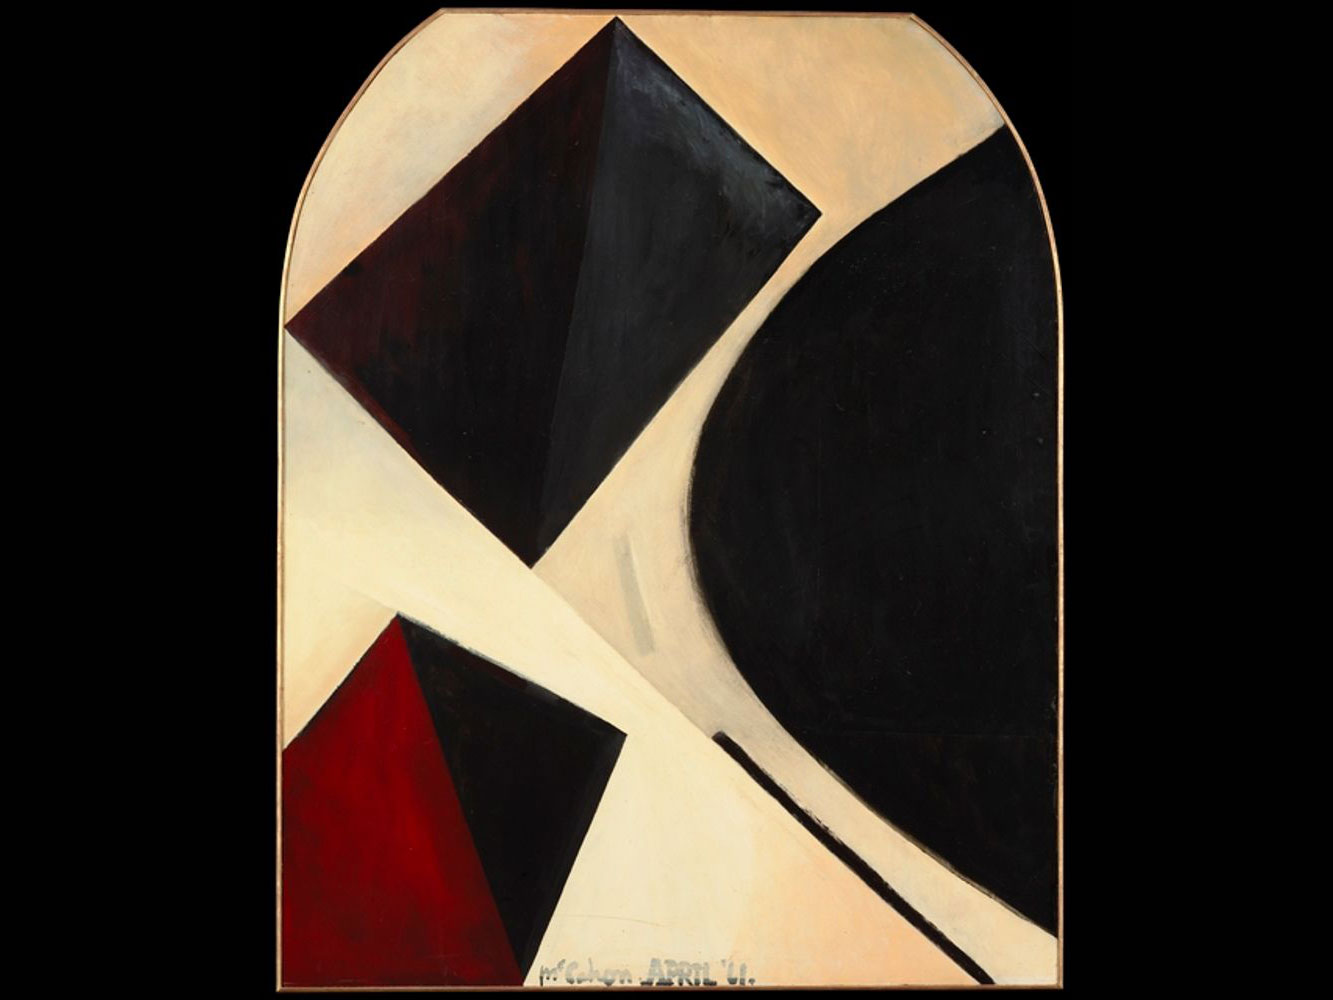 Geometric shaped in black, red, and beige